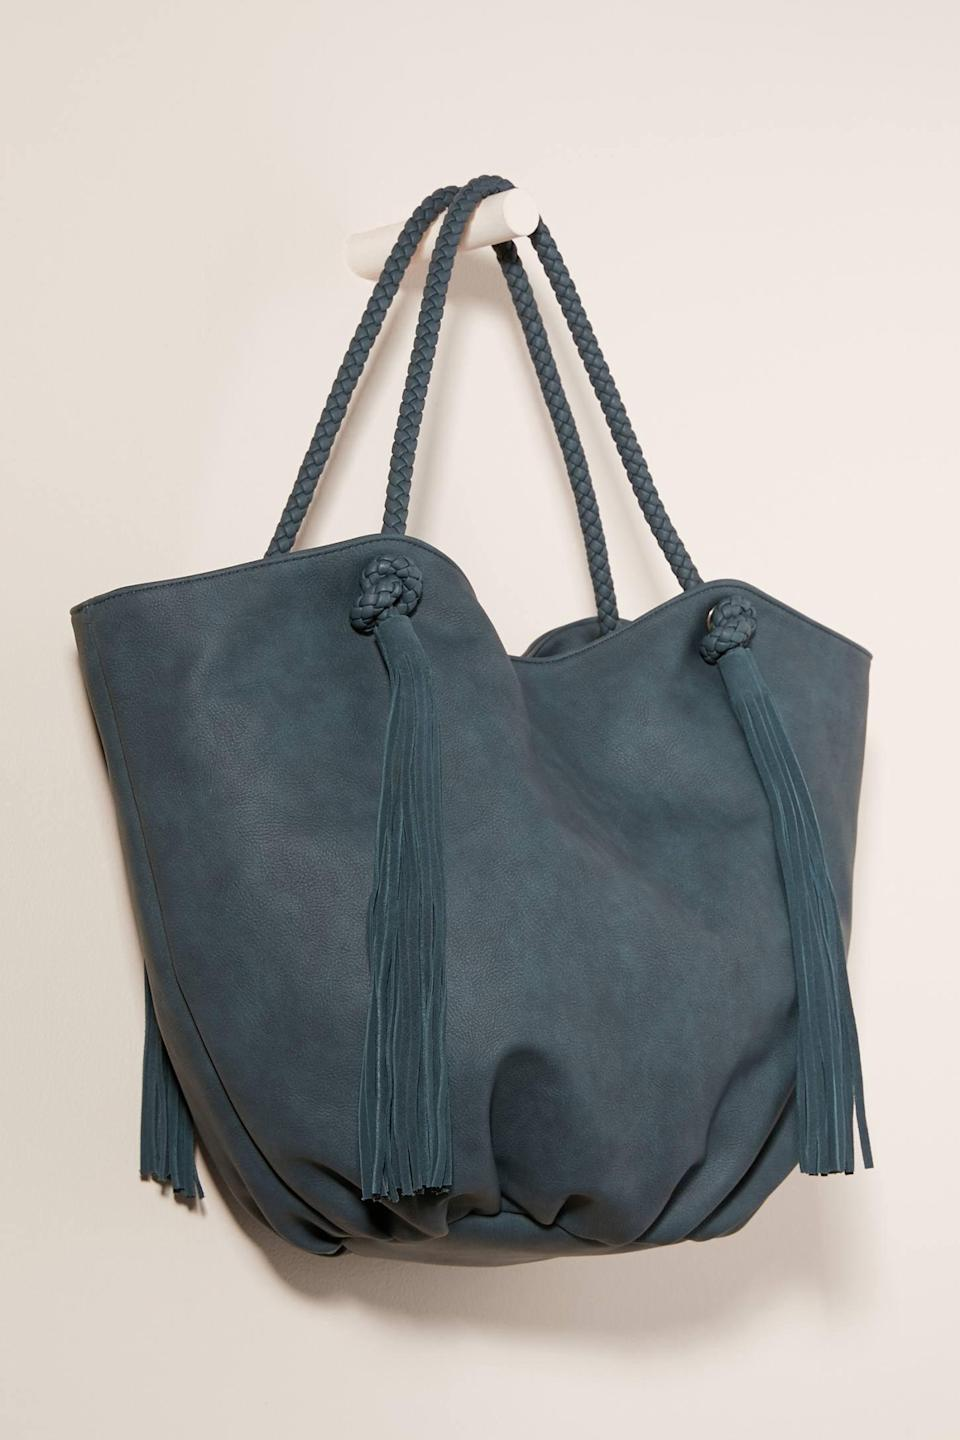 """<p>This <a href=""""https://www.popsugar.com/buy/Morgan-Tasseled-Tote-Bag-537120?p_name=Morgan%20Tasseled%20Tote%20Bag&retailer=anthropologie.com&pid=537120&price=88&evar1=fab%3Aus&evar9=45623846&evar98=https%3A%2F%2Fwww.popsugar.com%2Ffashion%2Fphoto-gallery%2F45623846%2Fimage%2F47066459%2FMorgan-Tasseled-Tote-Bag&list1=shopping%2Caccessories%2Cbags%2Cworkwear&prop13=mobile&pdata=1"""" class=""""link rapid-noclick-resp"""" rel=""""nofollow noopener"""" target=""""_blank"""" data-ylk=""""slk:Morgan Tasseled Tote Bag"""">Morgan Tasseled Tote Bag</a> ($88) comes in a ton of fun color choices.</p>"""